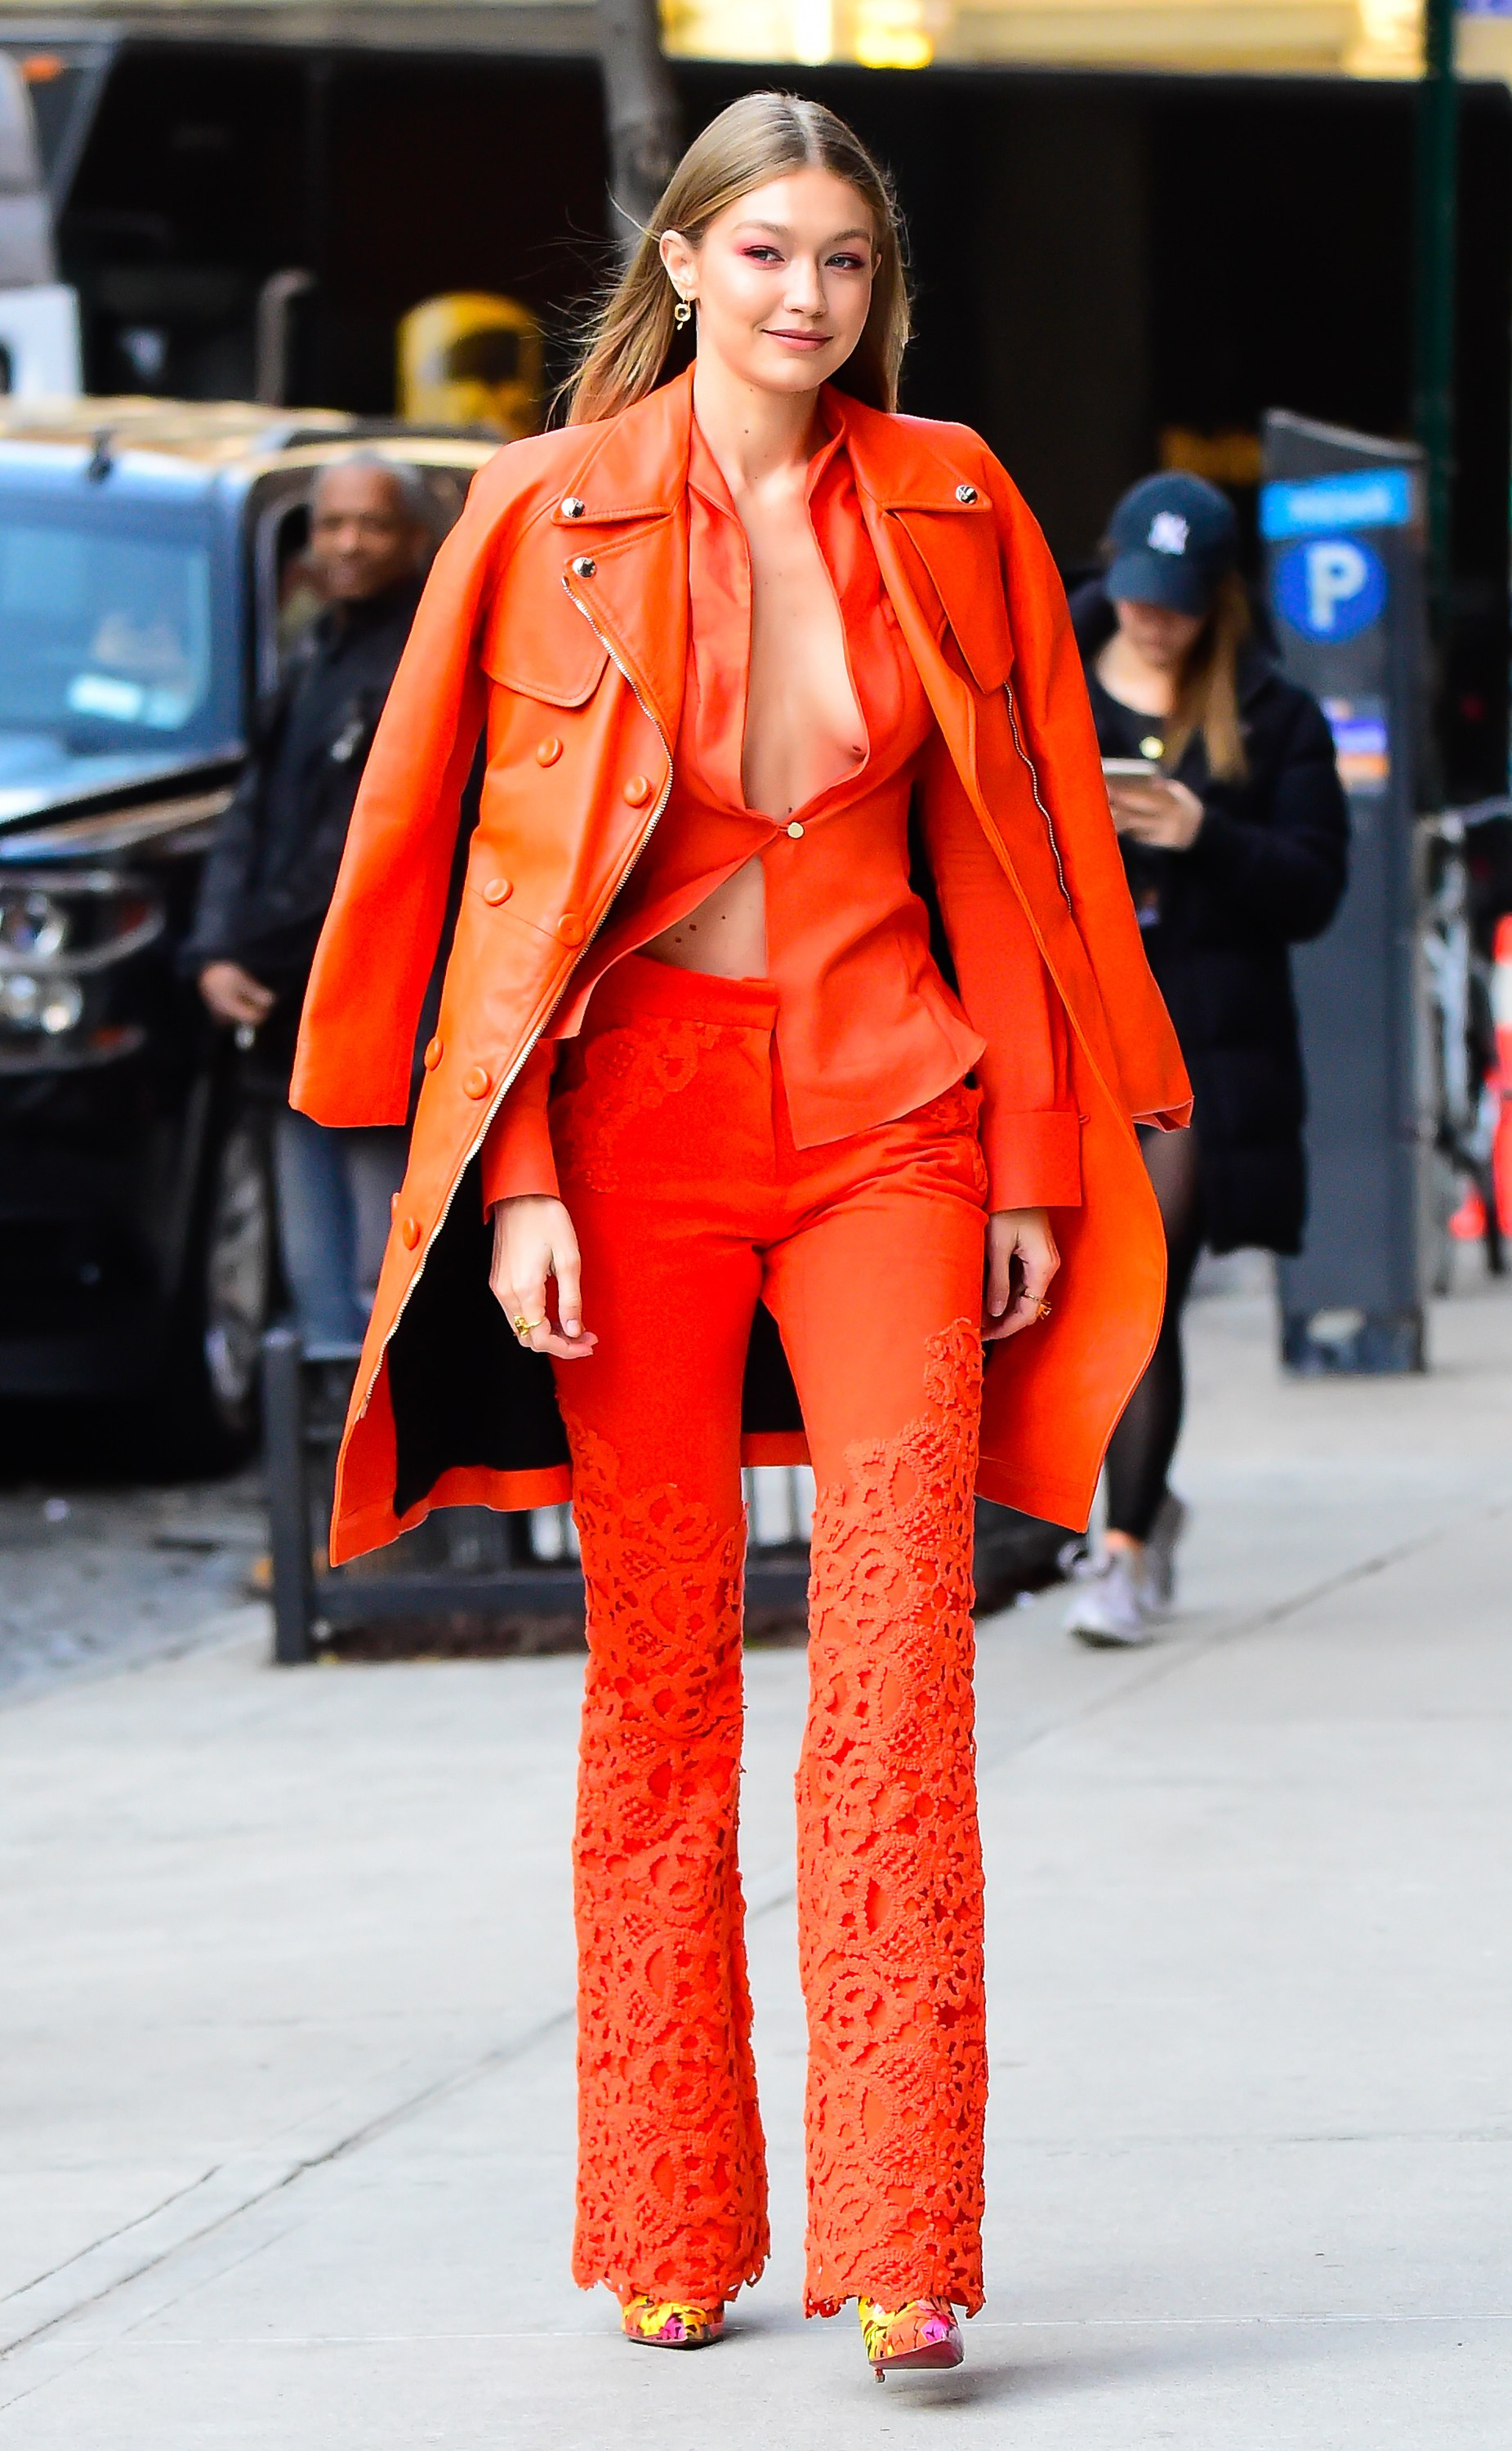 Gigi Hadid In Ronald van der Kemp & Moschino - Out In New York City